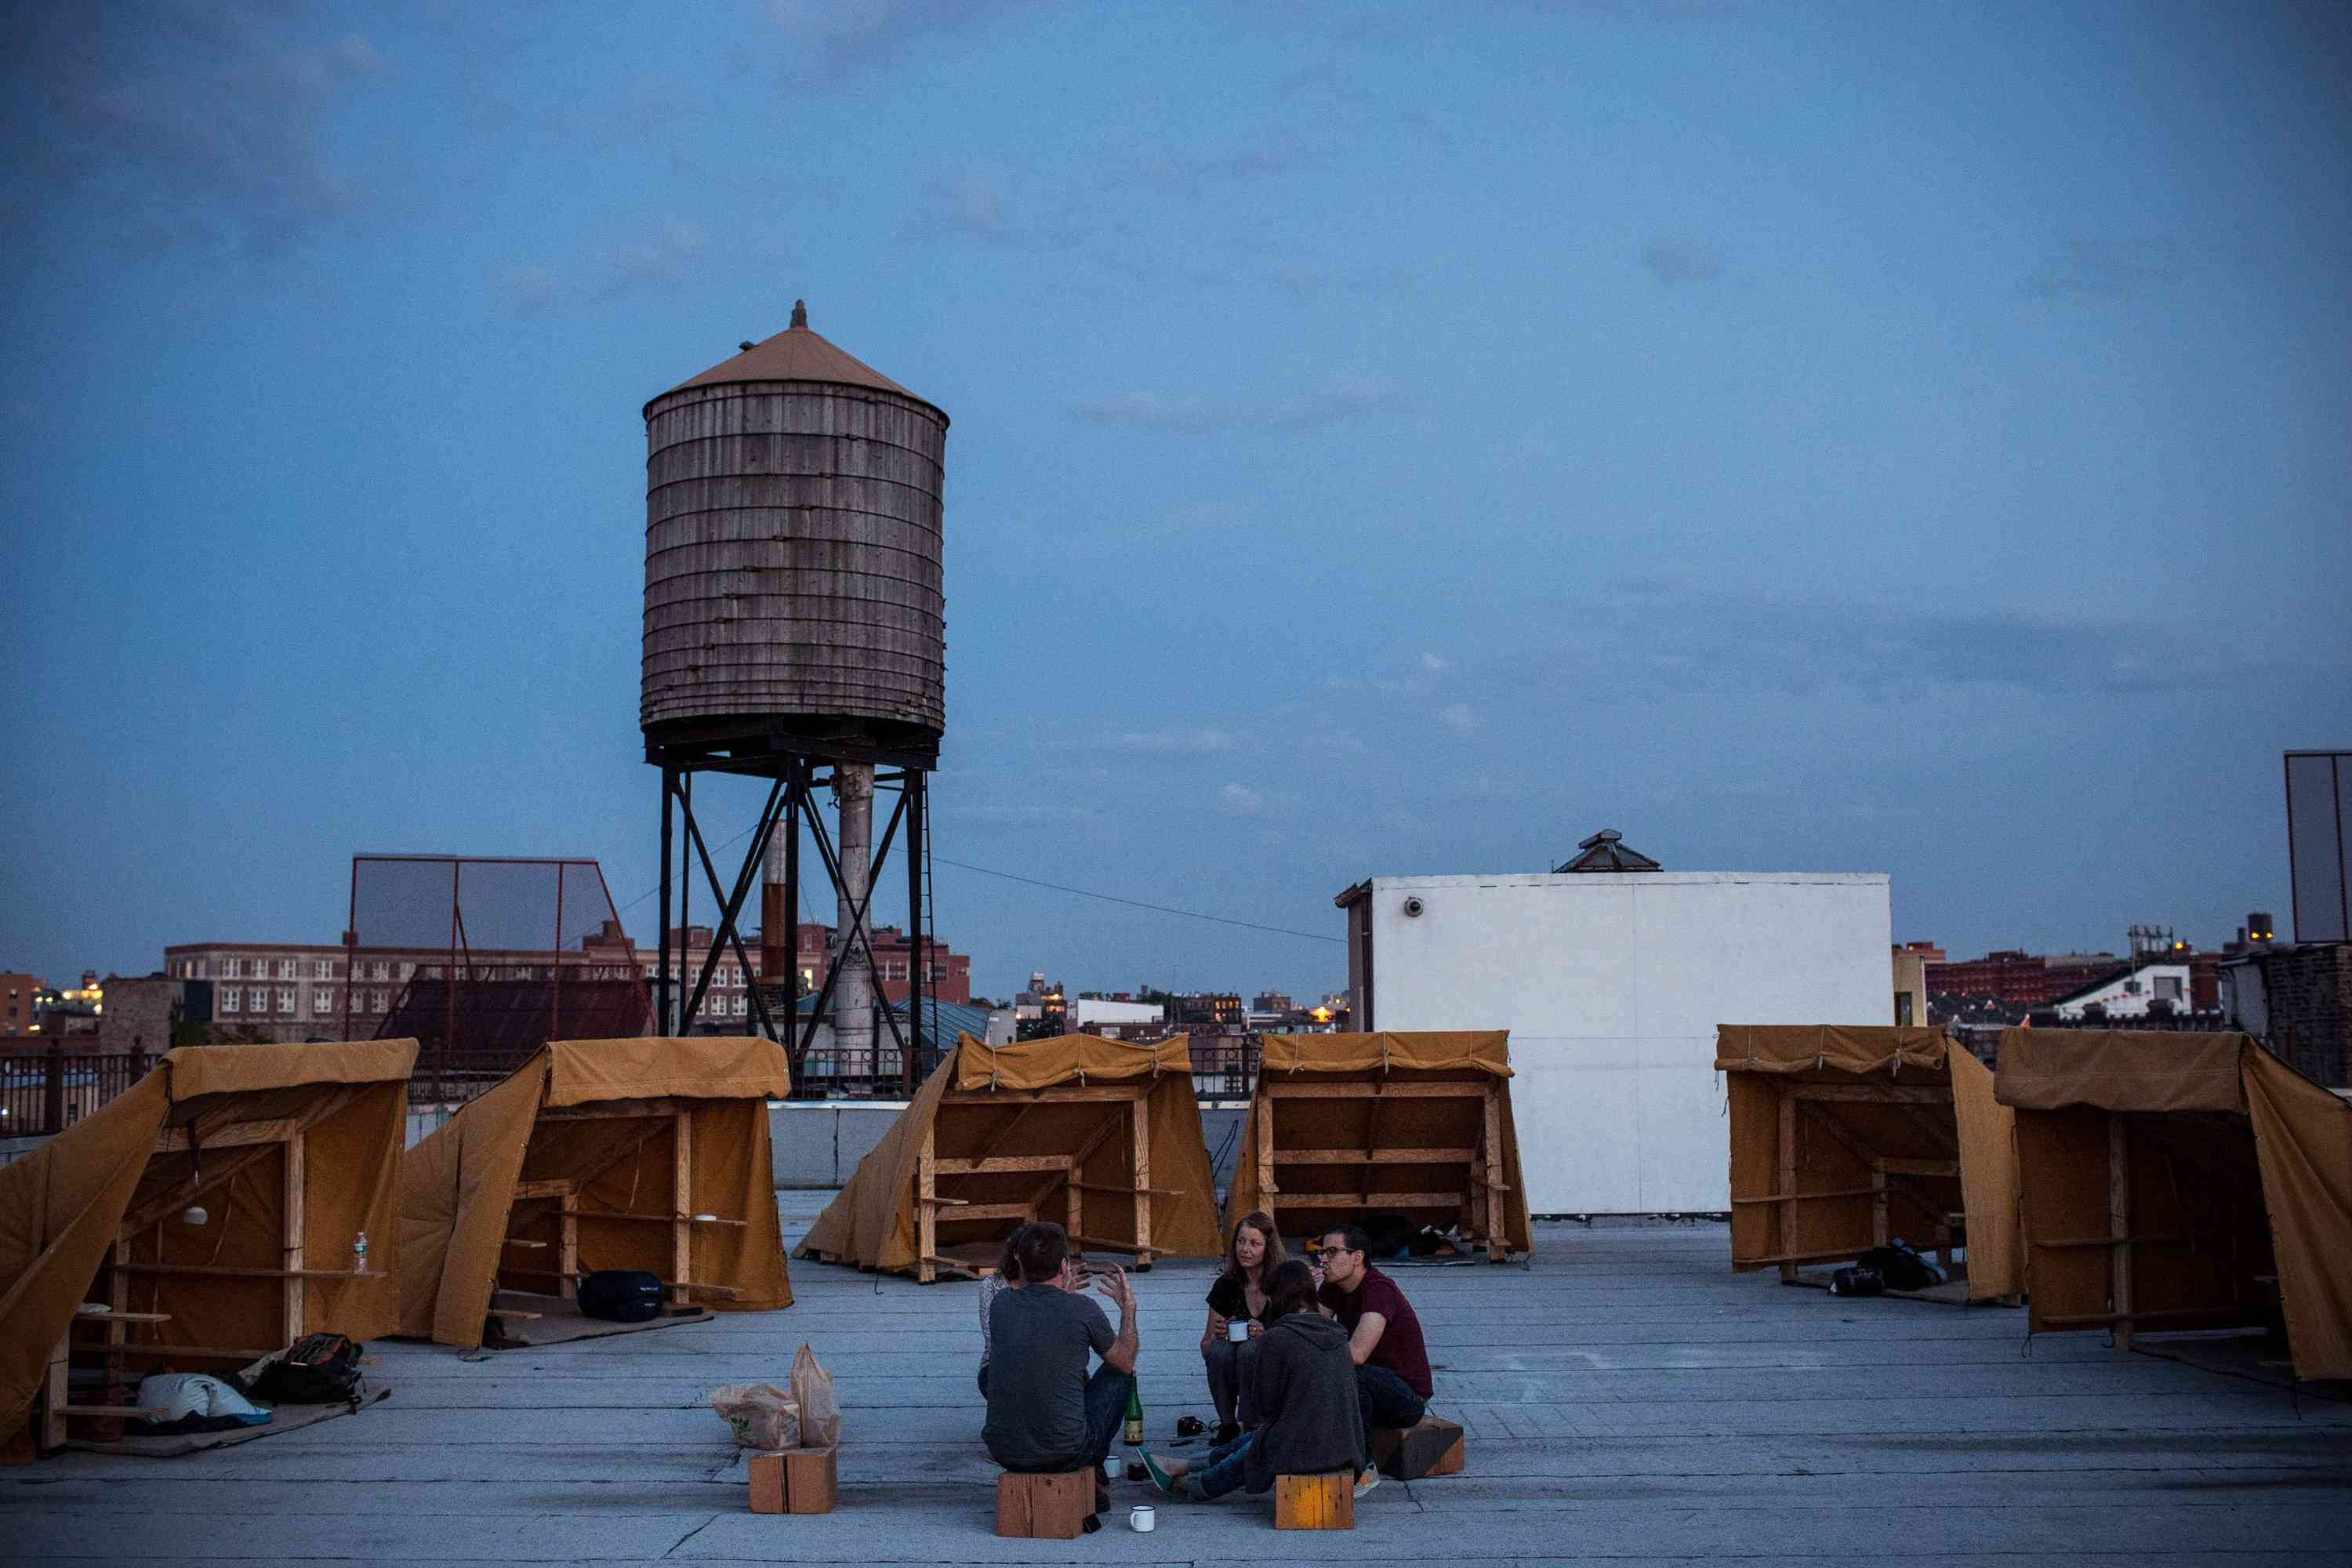 A group of people camp on a roof of New York City with Thomas Stevenson